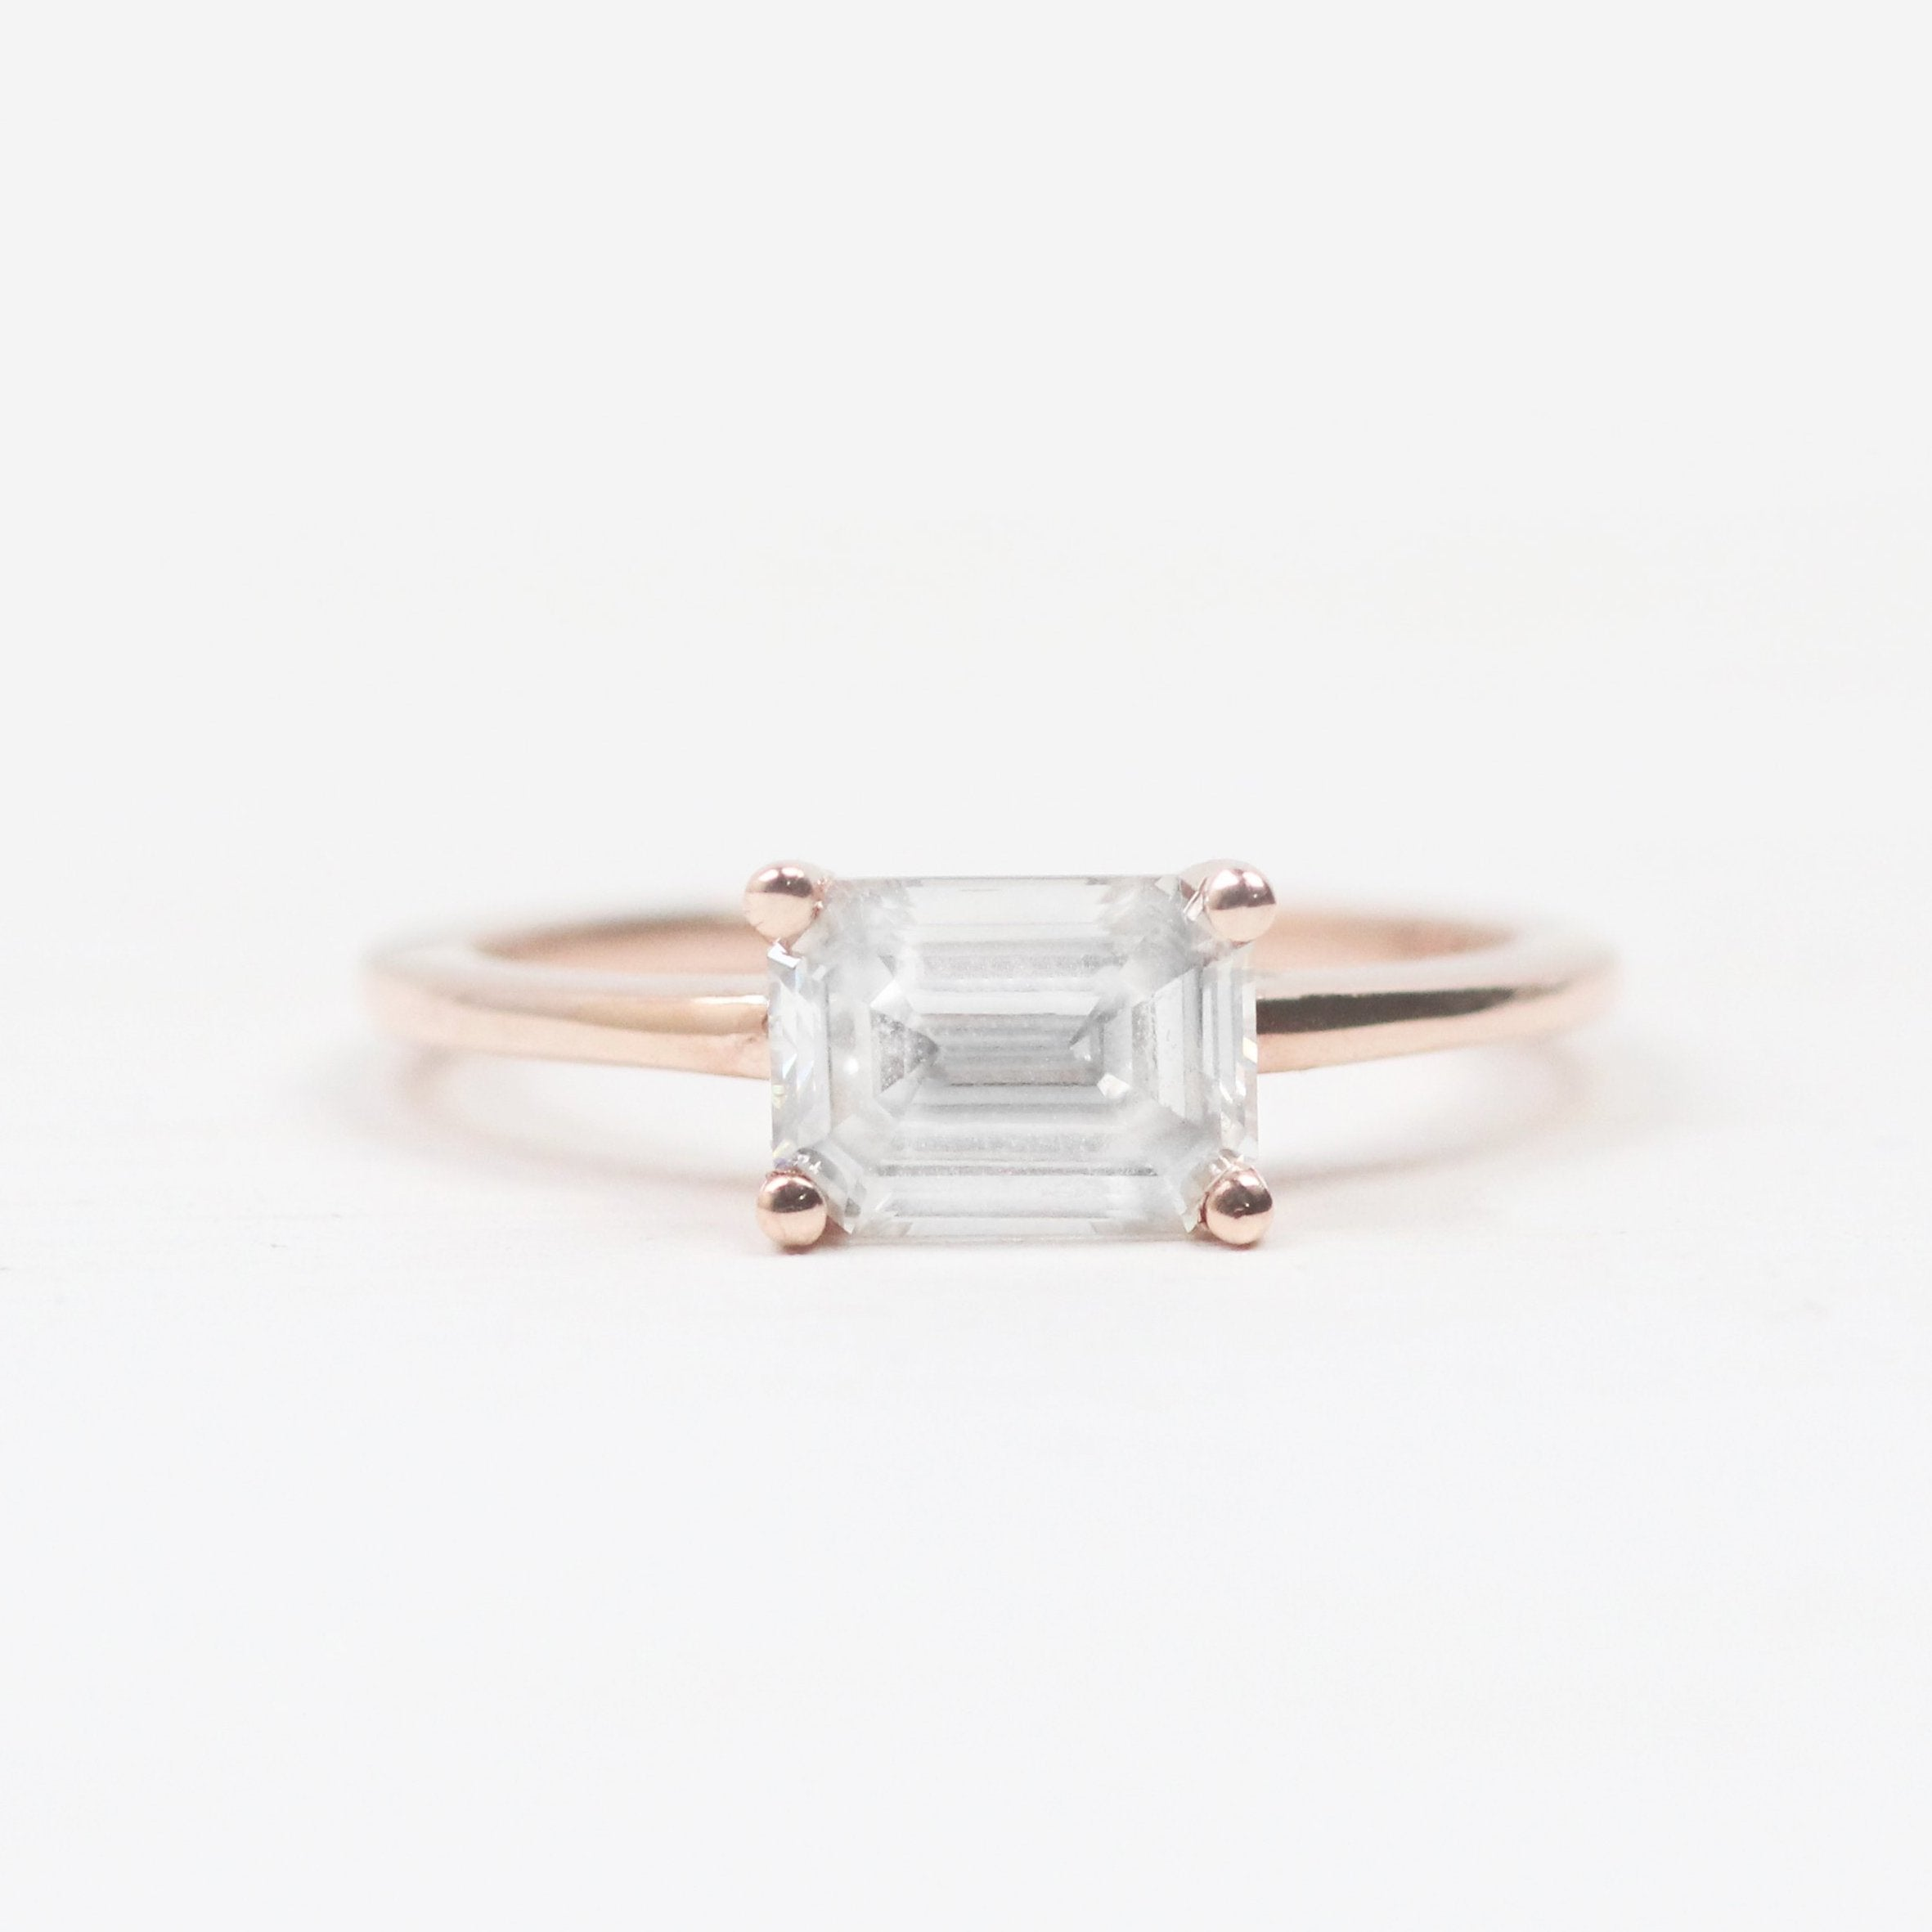 Ruthie Ring with Clear 1 Carat Moissanite - 10k Rose Gold - Ready to ship soon